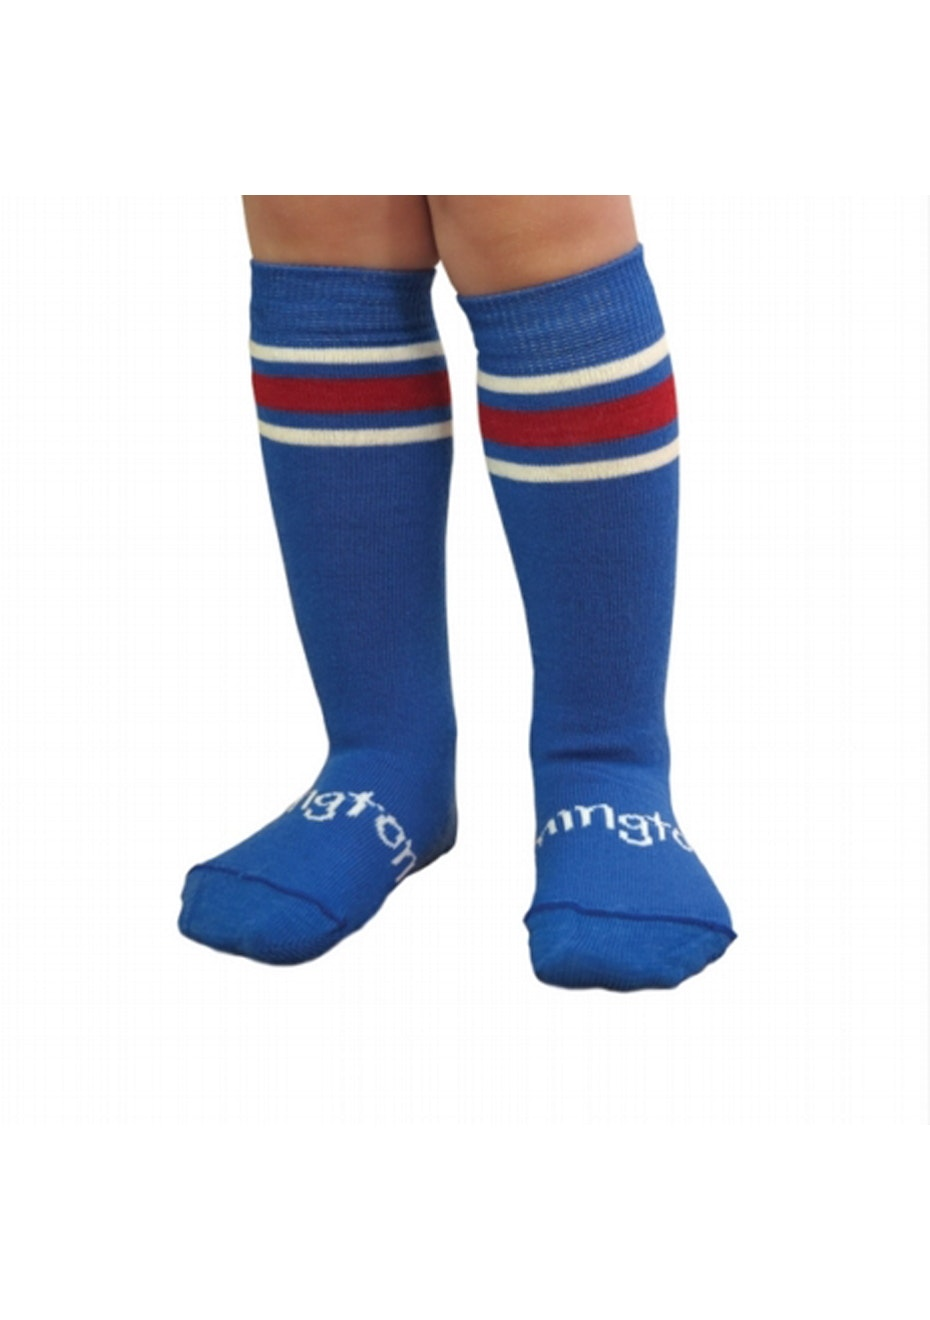 Lamington - Kids Wilson Socks - Blue with red and cream stripe at top